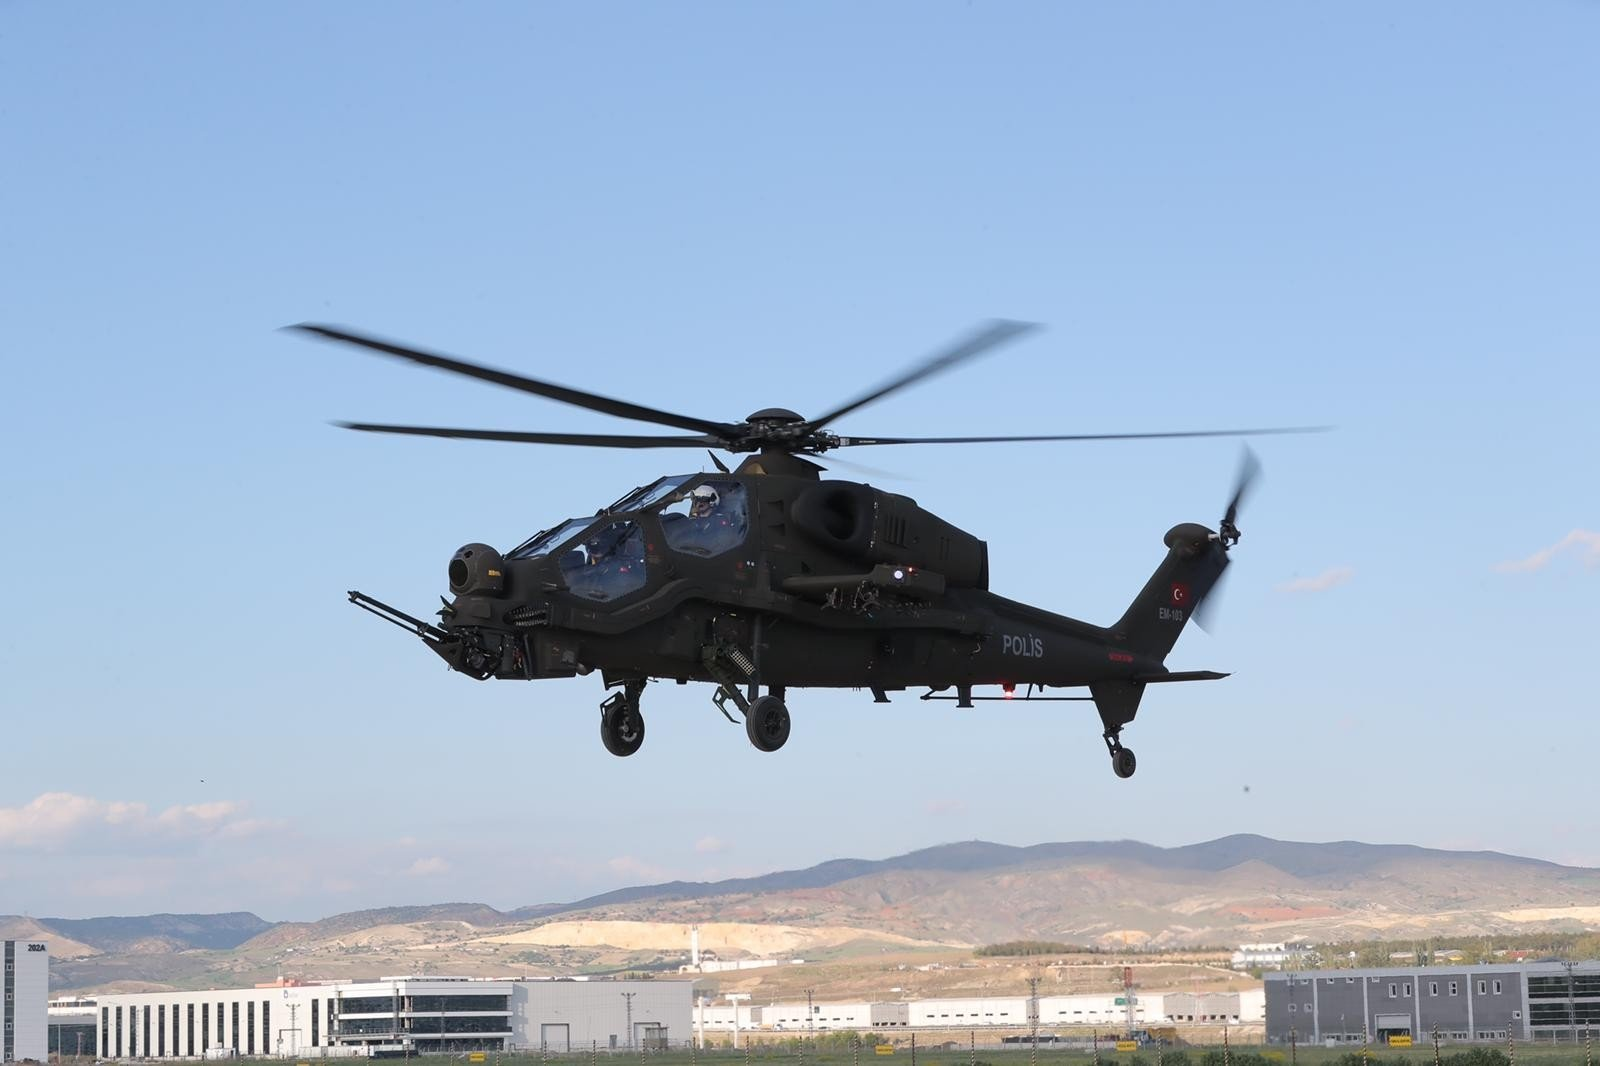 The upgraded version of the T129 Tactical Reconnaissance and Attack Helicopter delivered to Turkey's General Directorate of Security flies over the capital, Ankara, Turkey, May 17, 2021. (IHA Photo)